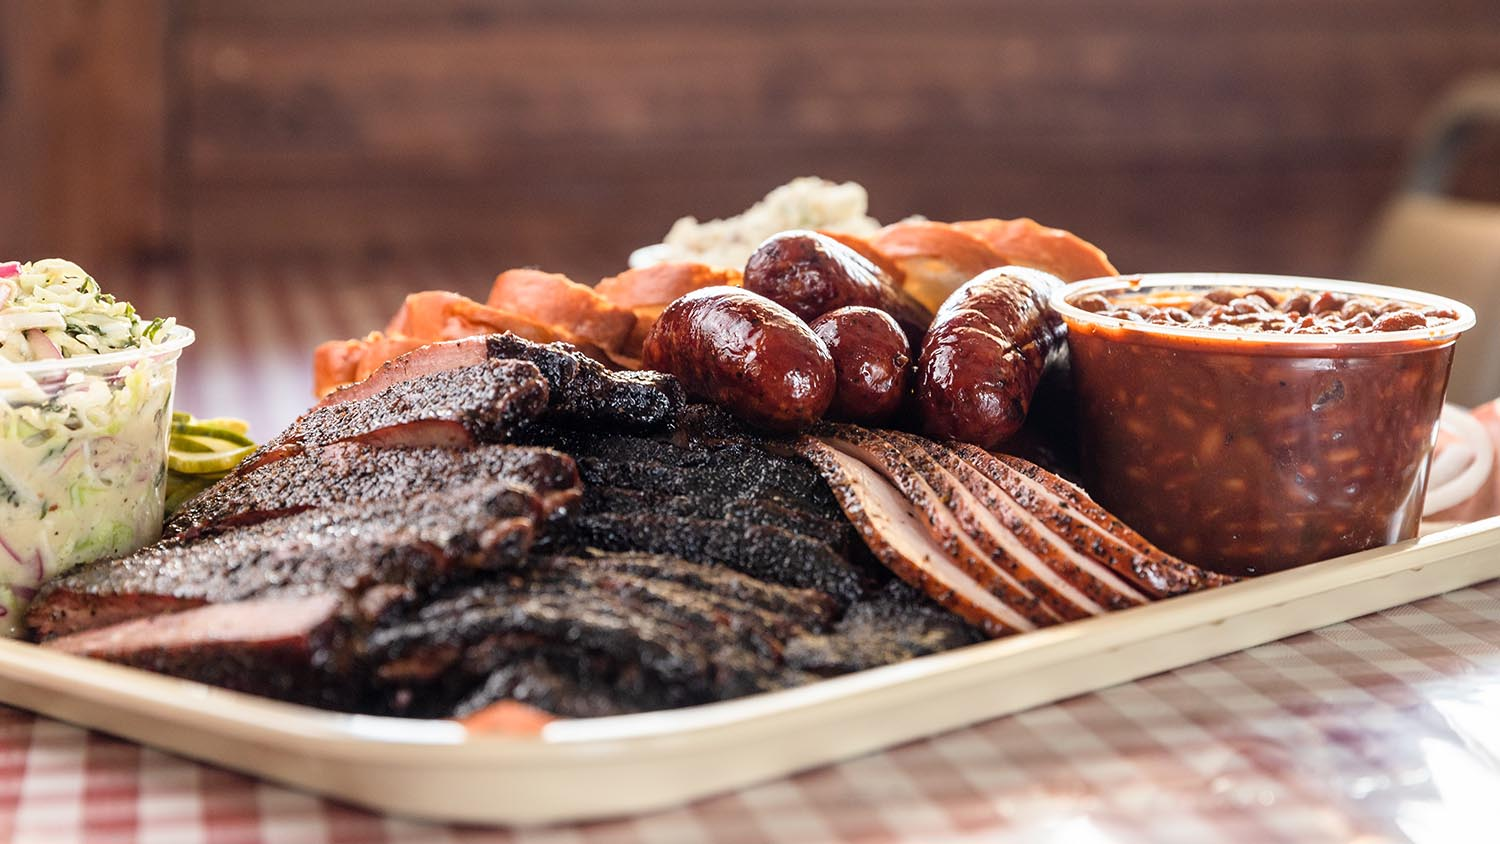 A tray of barbecue food